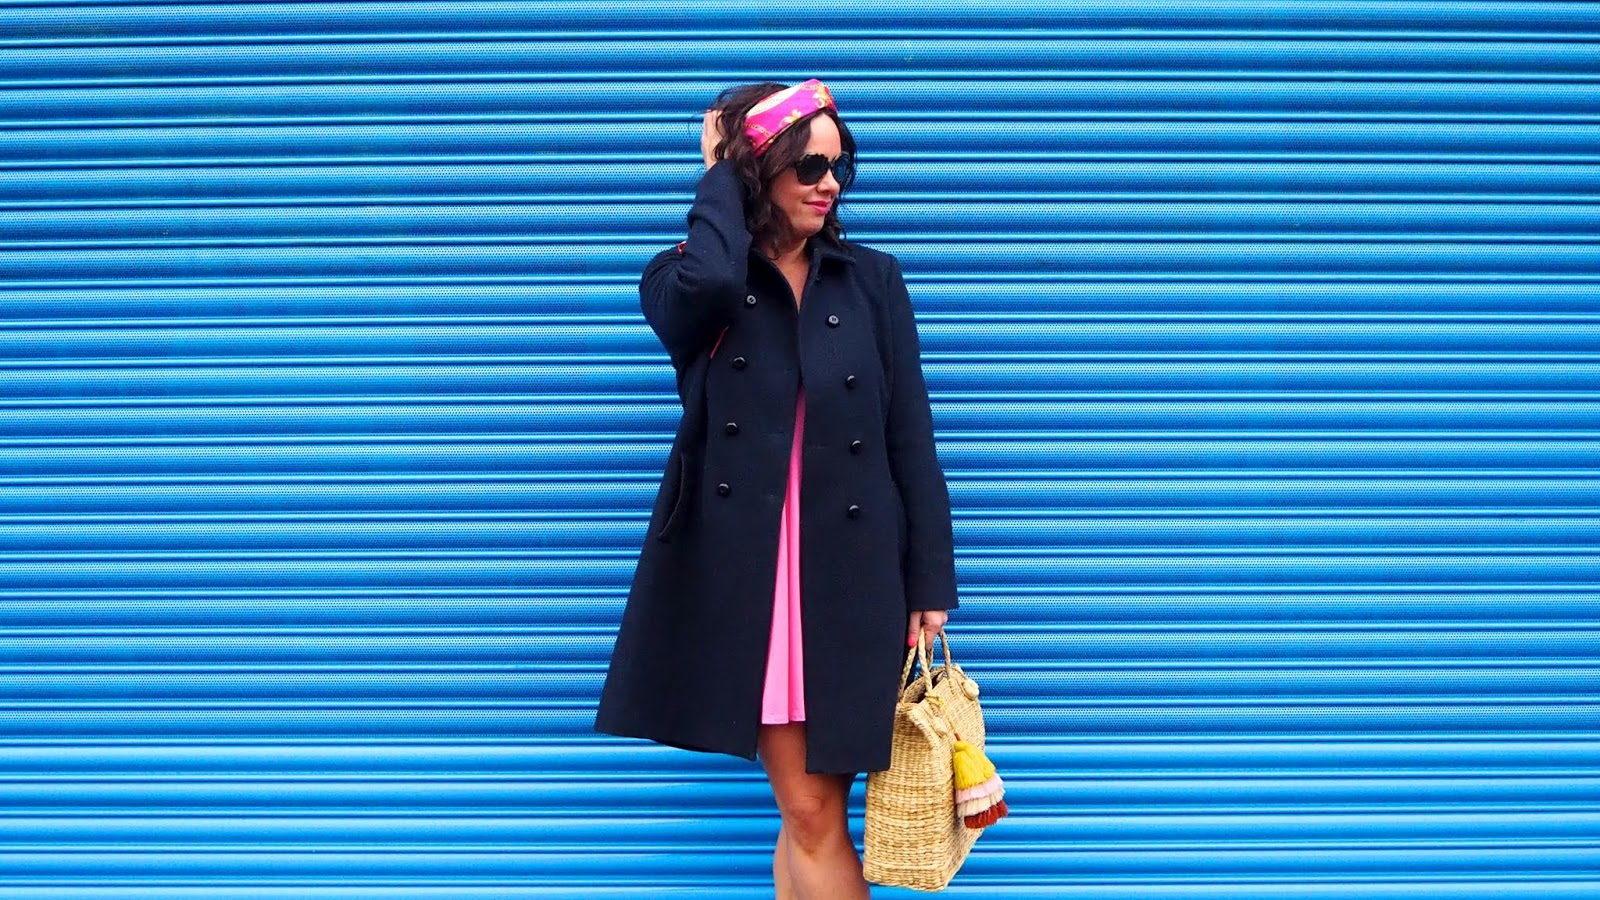 Pink dress, navy coat and chain print headscarf